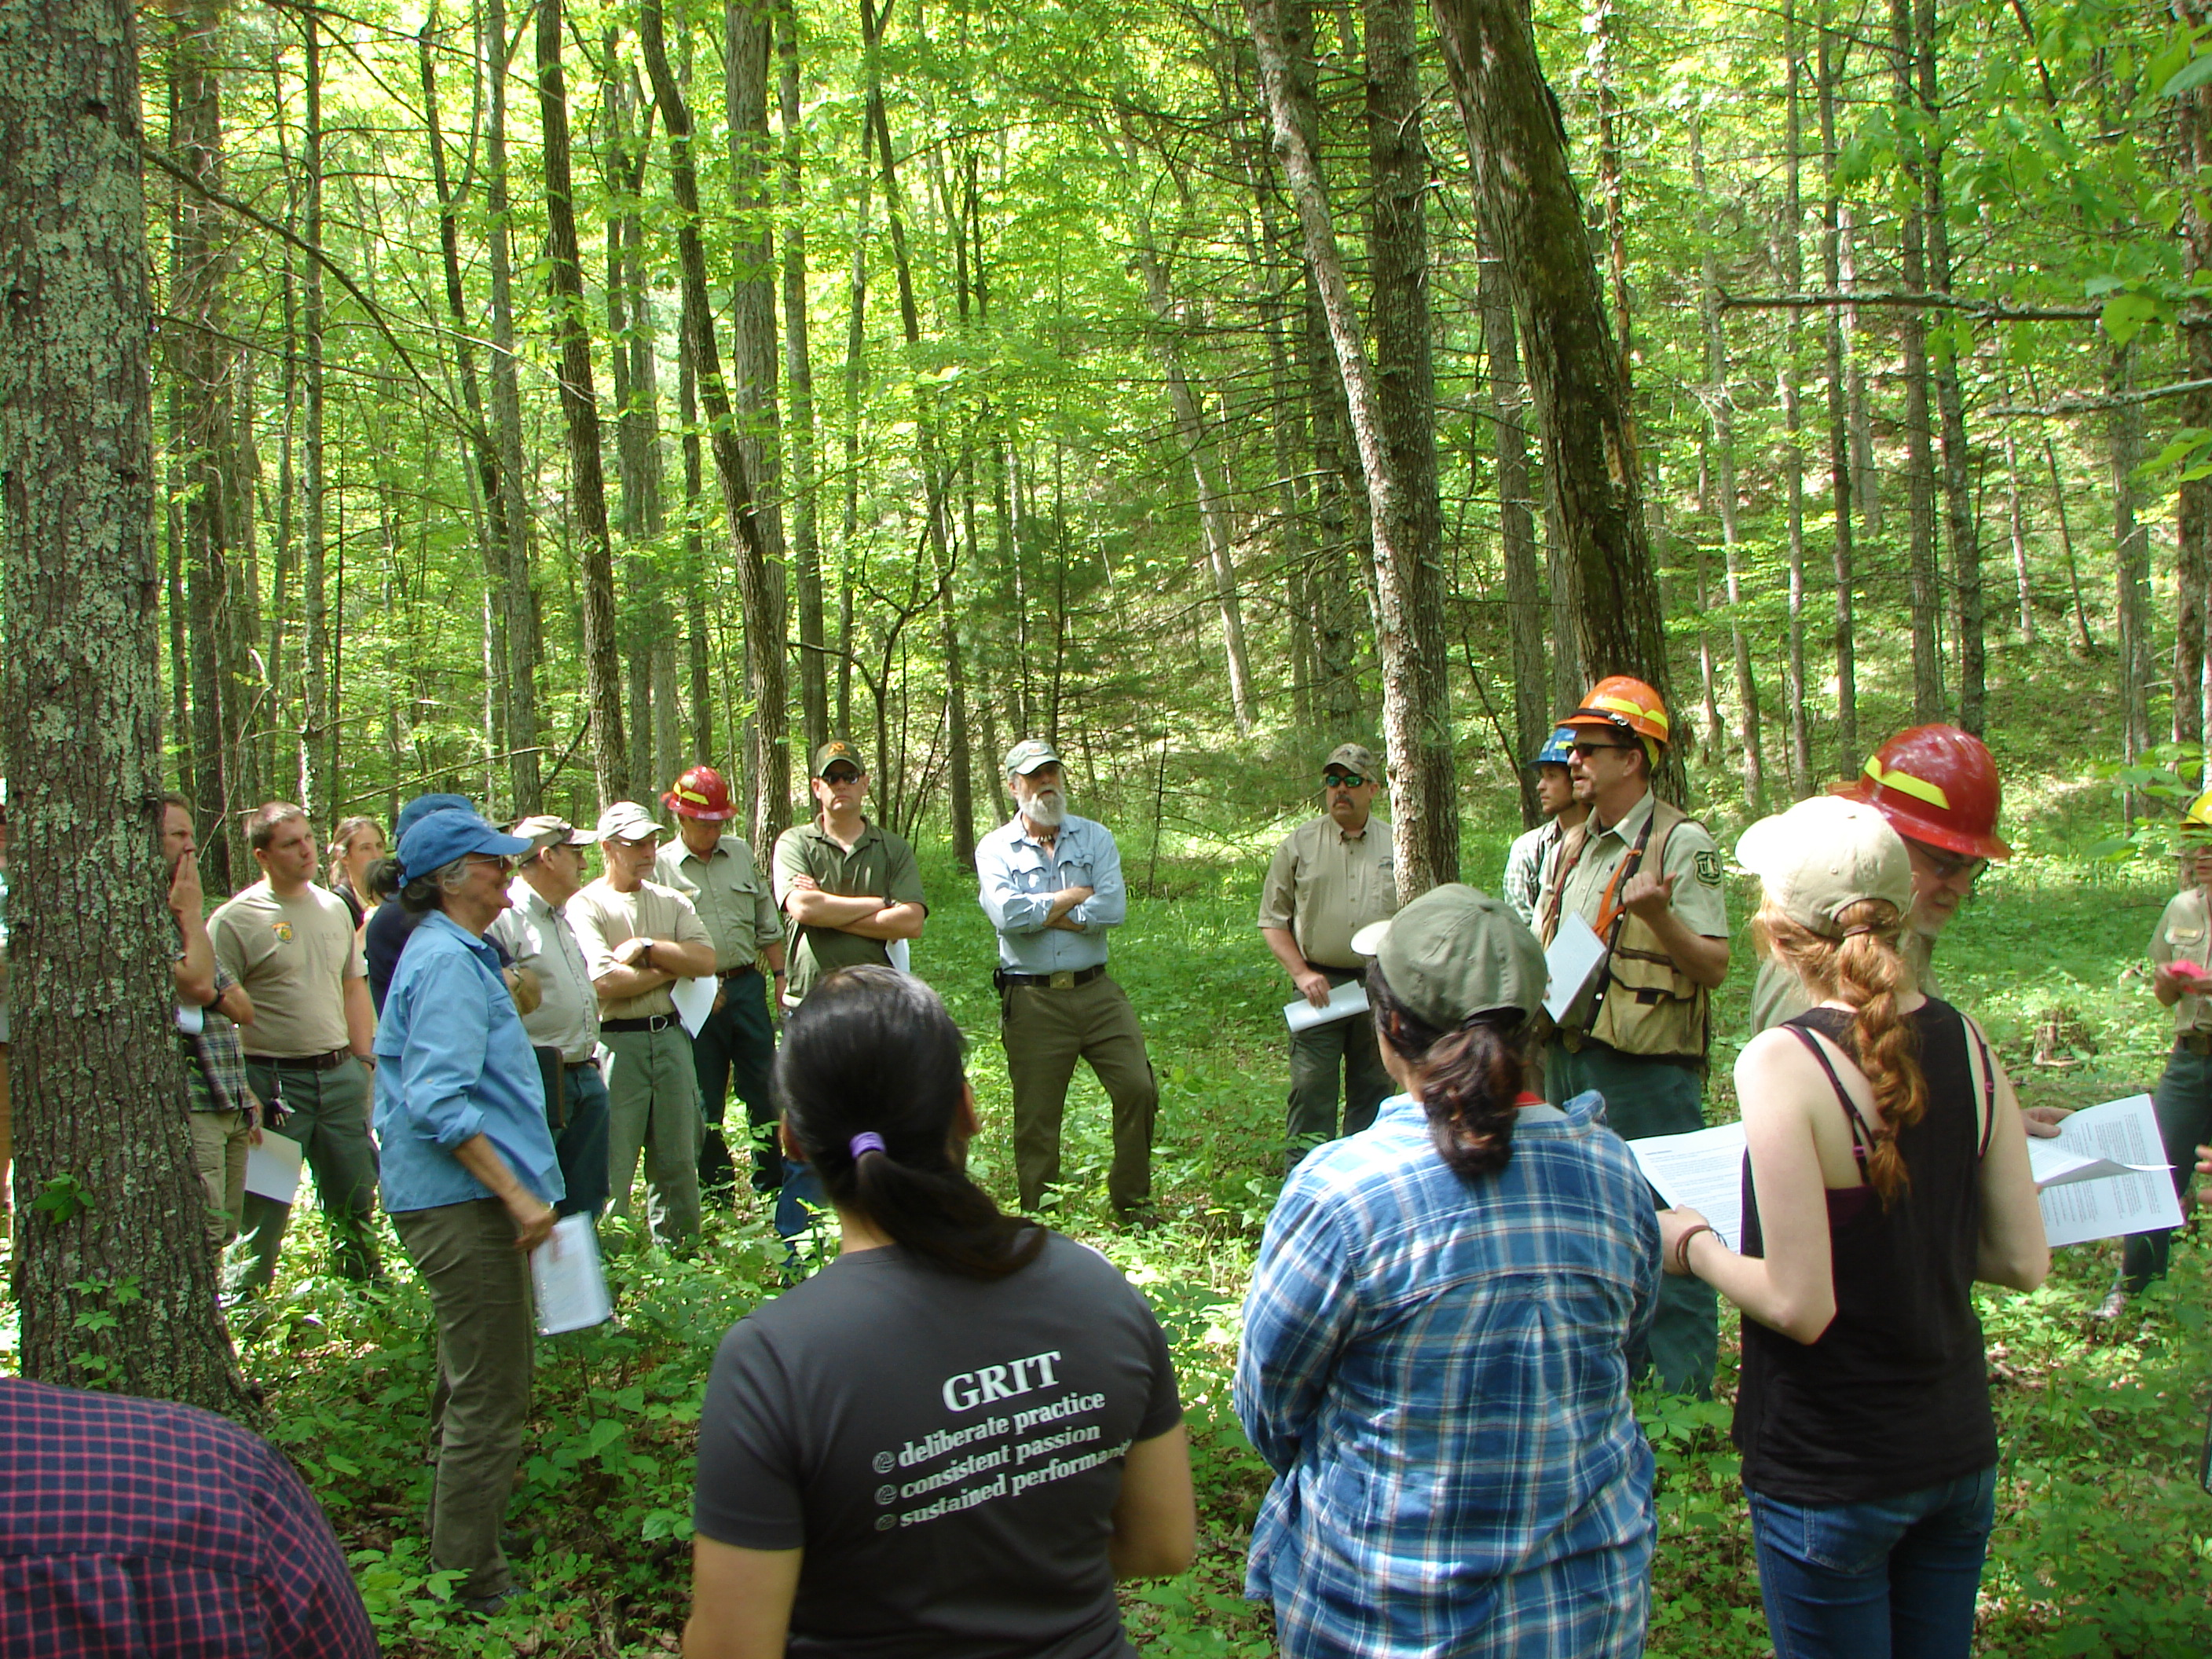 Several people stand in a wooded area listening to a forester speak